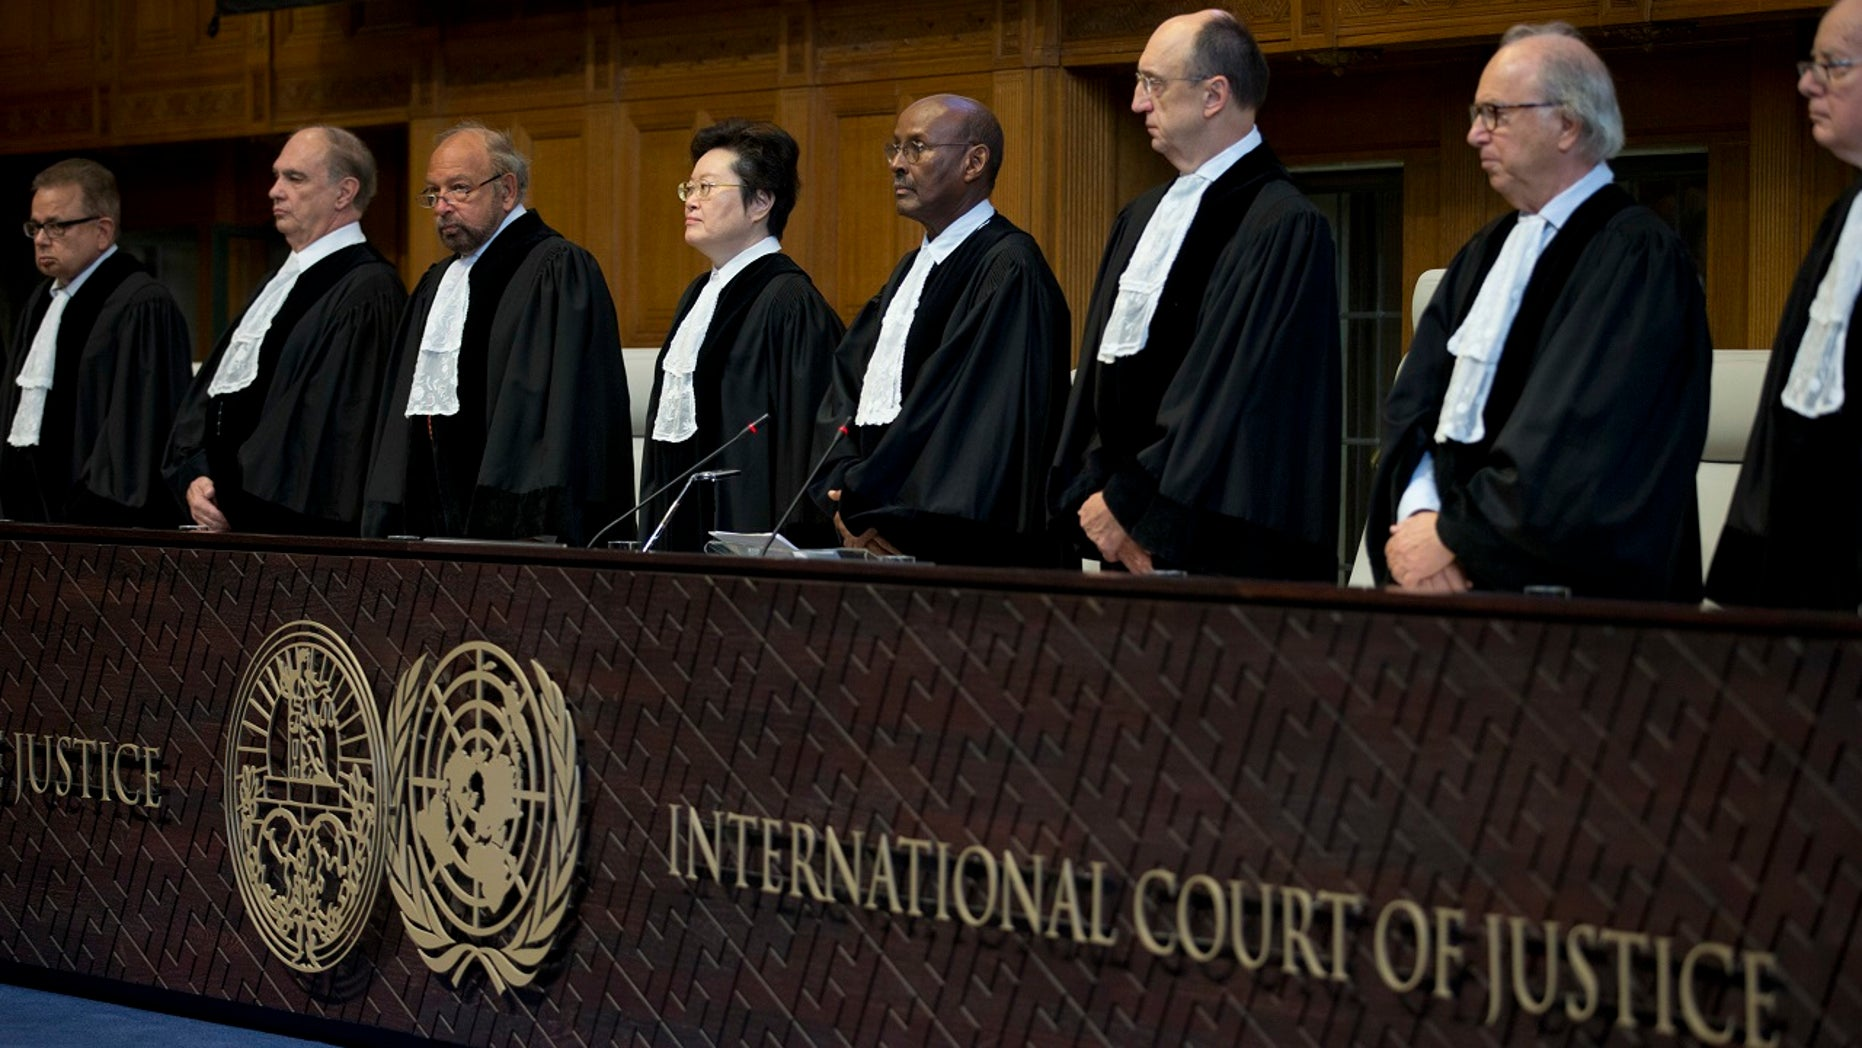 Judges enter the International Court of Justice, or World Court, in the Hague, Netherlands, where they ruled on an Iranian request to order Washington to suspend U.S. sanctions against Tehran, Oct. 3, 2018.